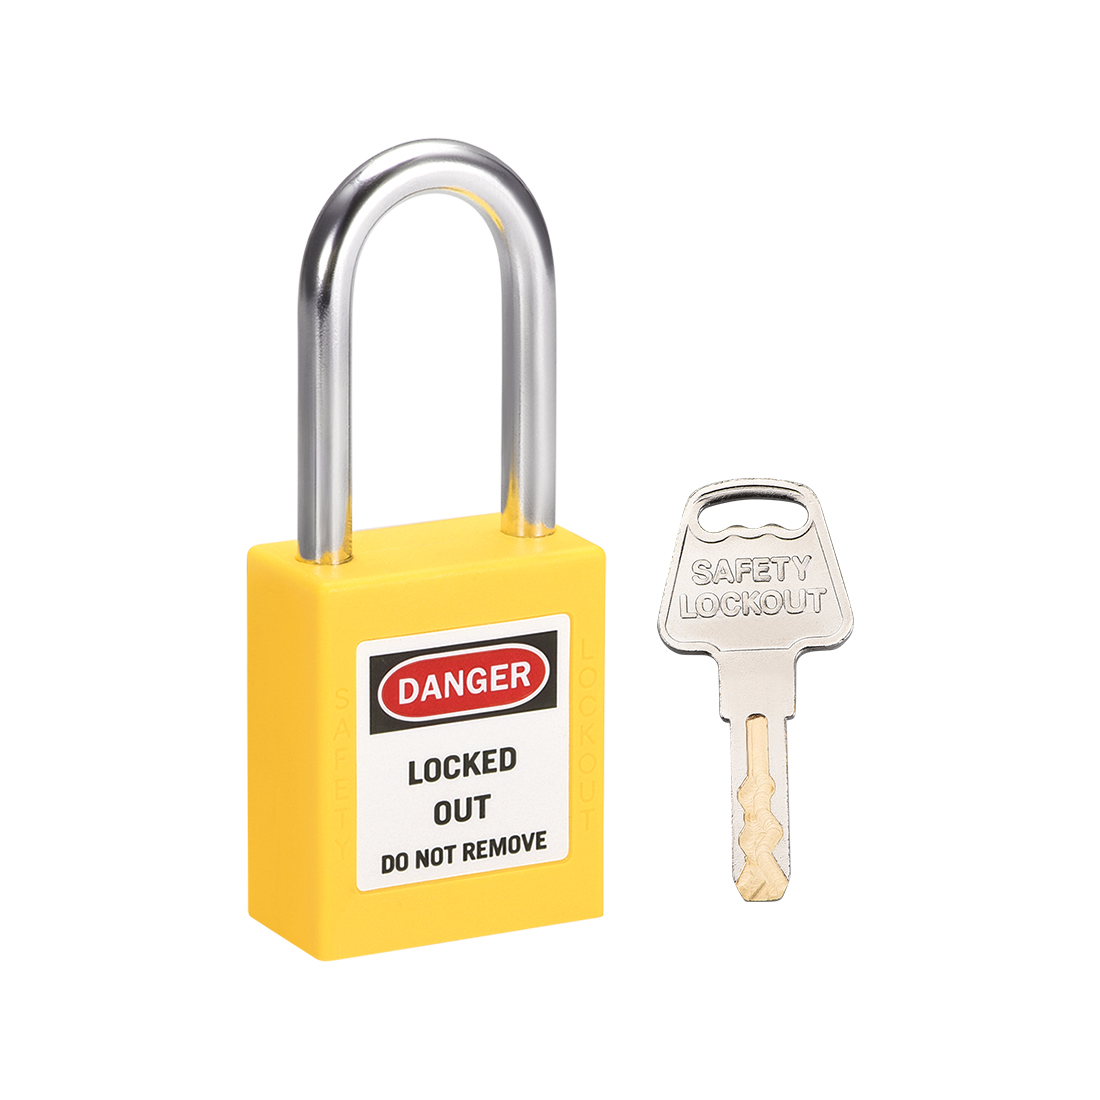 Lockout Tagout Locks 1-1/2 Inch Shackle Key Alike Safety Padlock Plastic Yellow